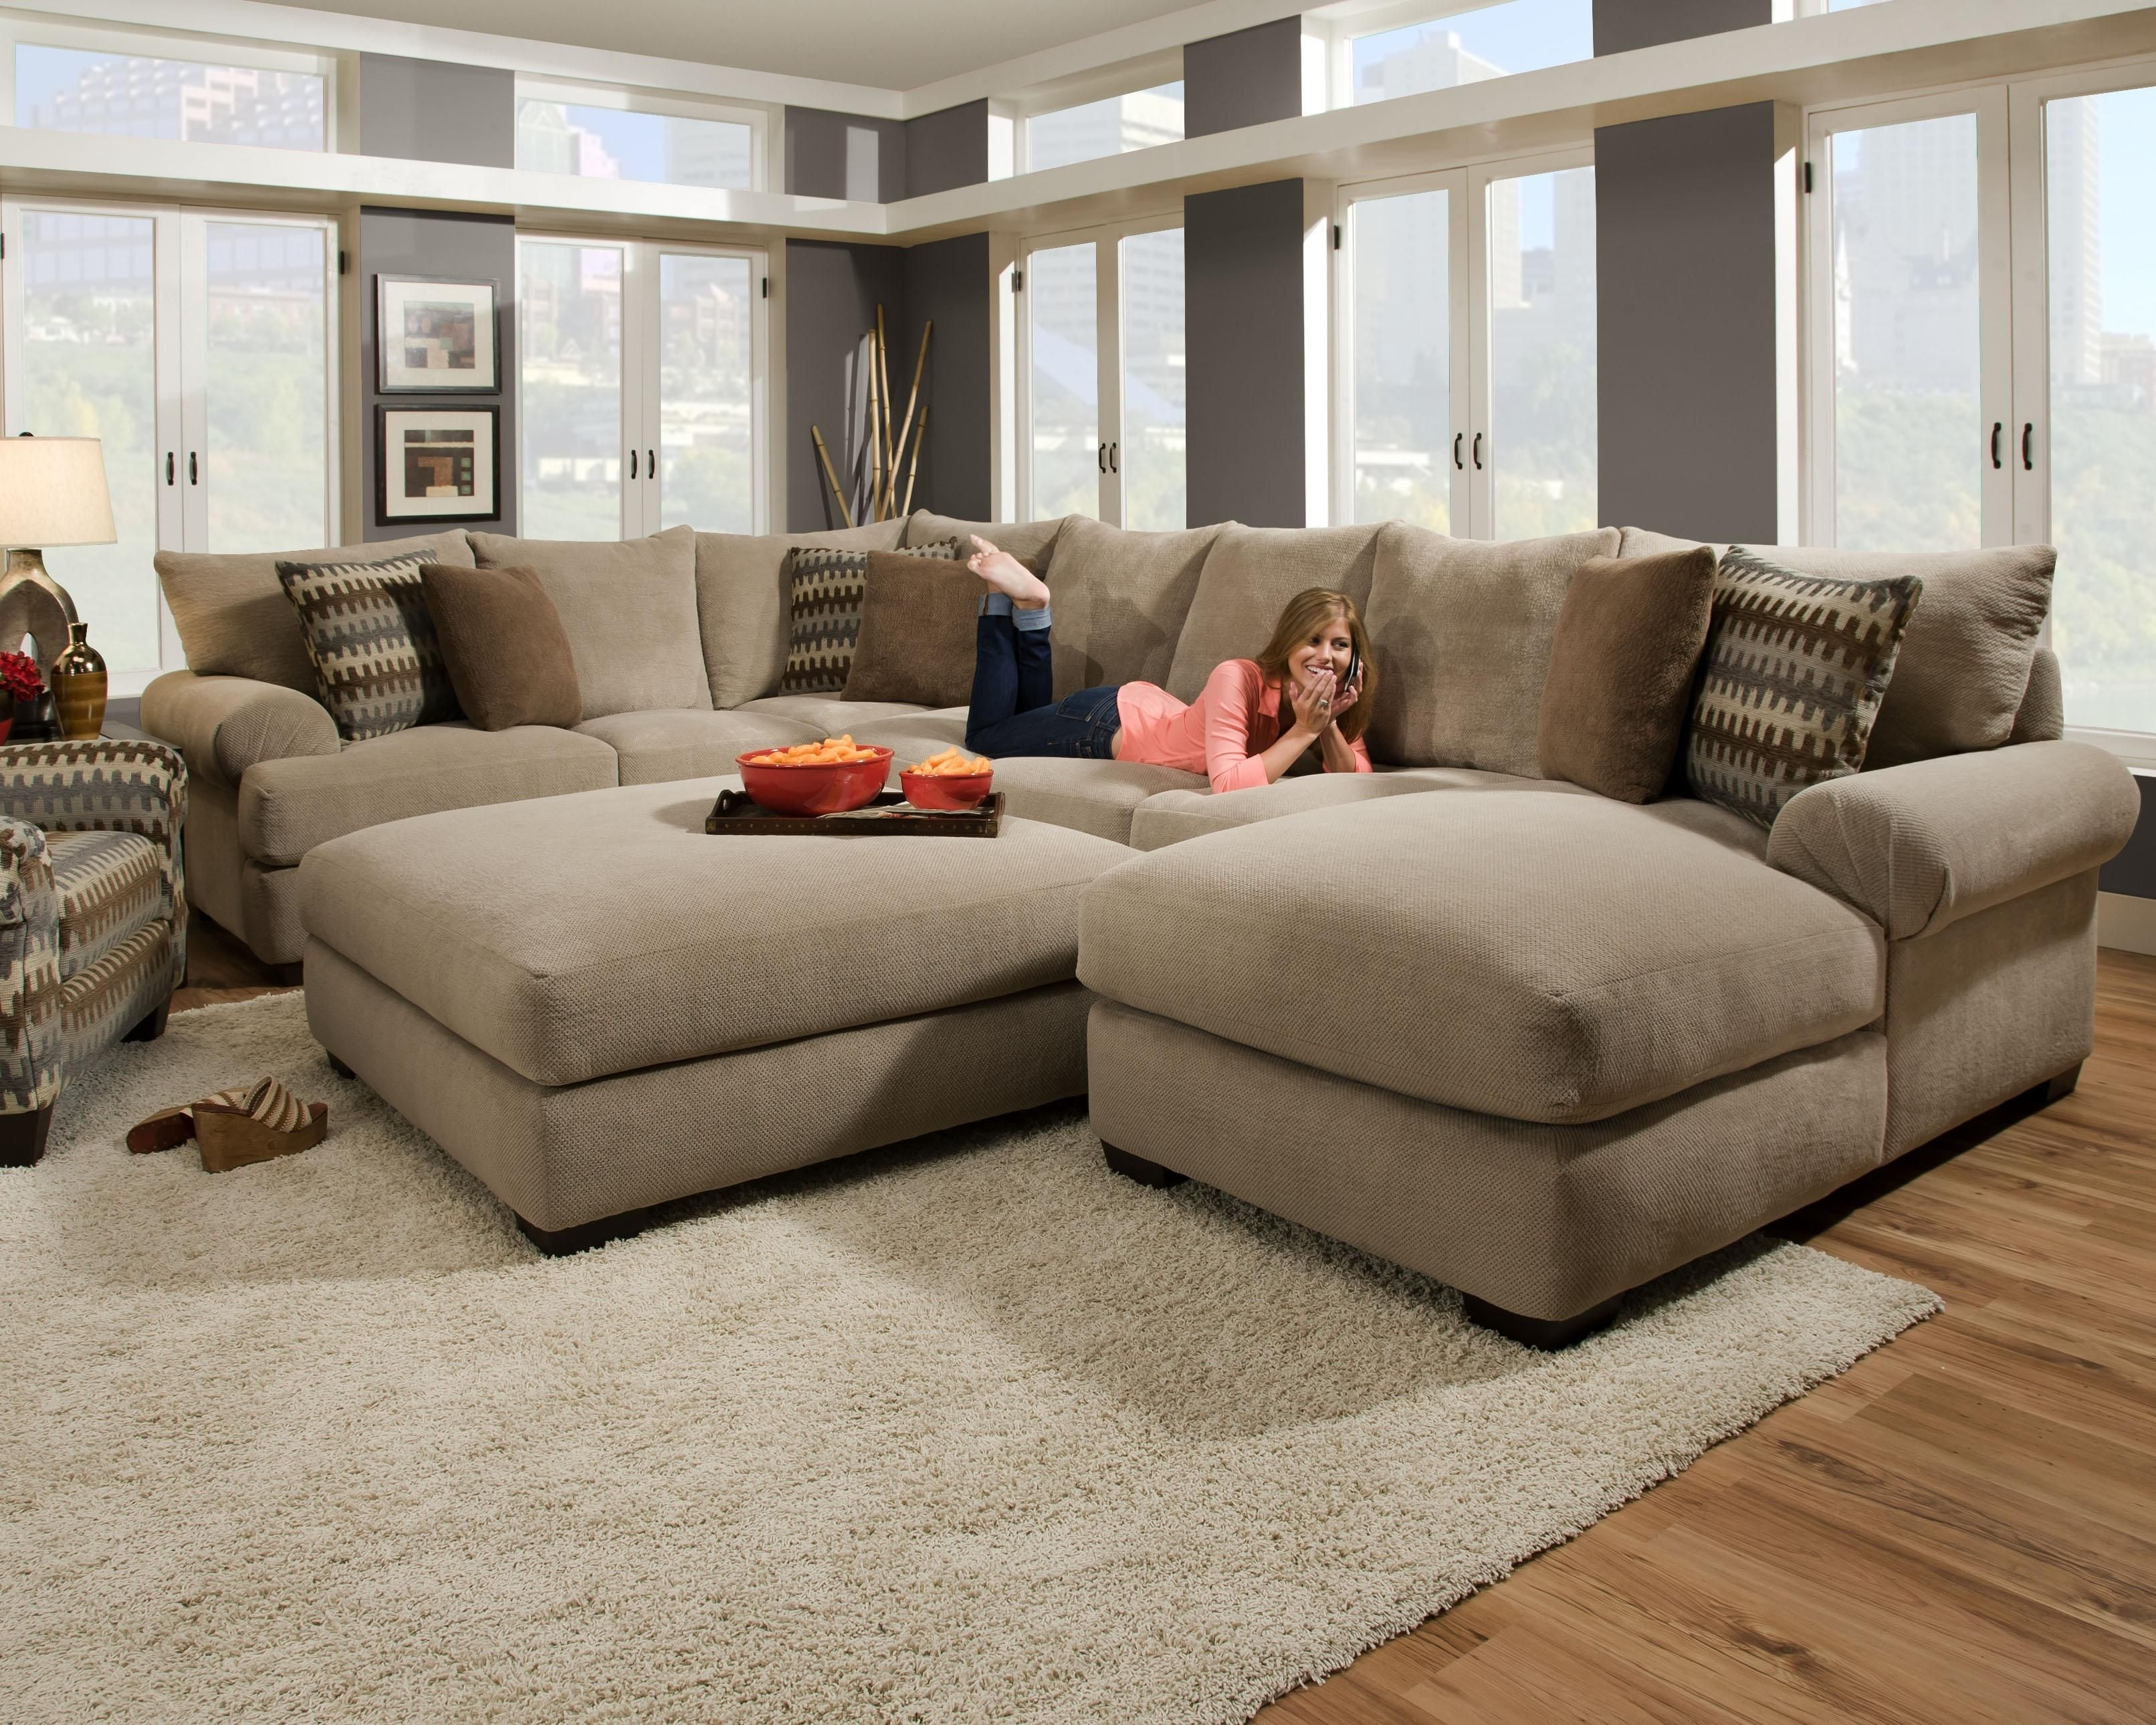 Furniture Design Idea For Living Room And Oversized U Shaped Regarding Big U Shaped Couches (View 3 of 10)